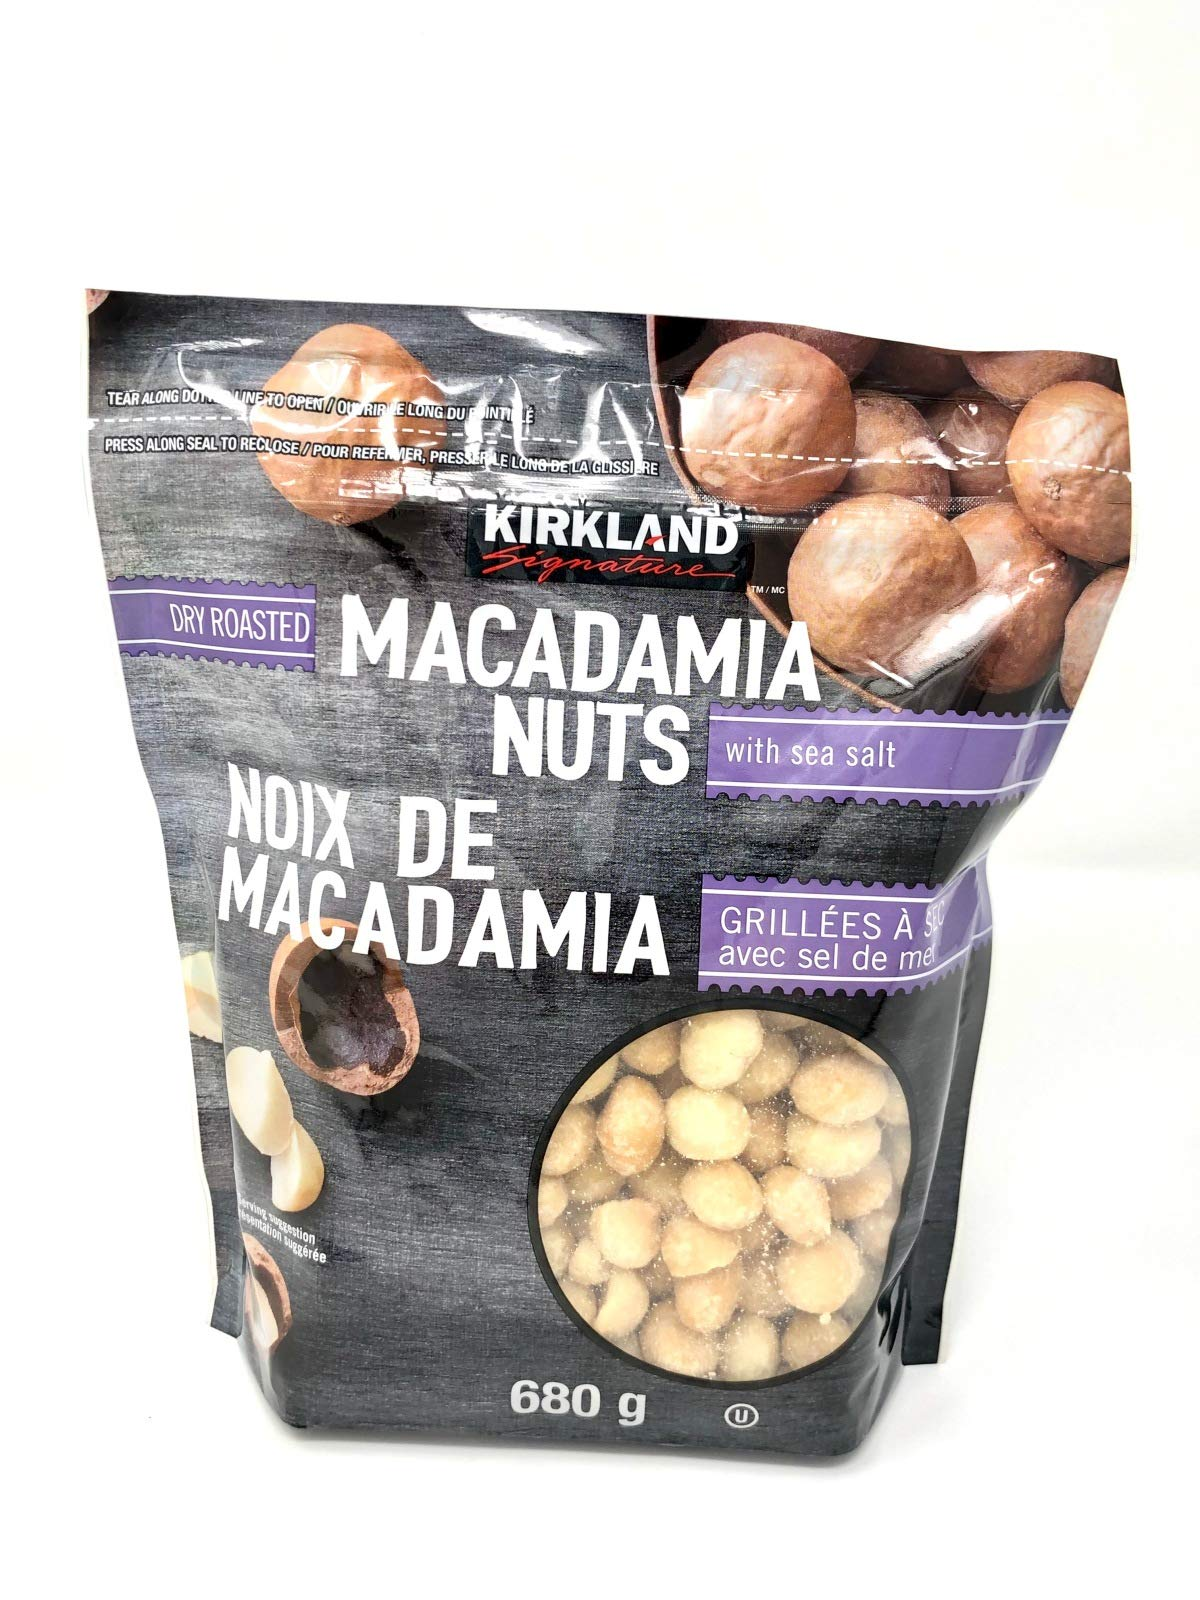 Kirkland Signature Dry Roasted Macadamia Nuts with Sea Salt, Resealable Bag (48 Ounce (Pack of 2, 24 OZ Each Pack)) by Kirkland Signature (Image #1)